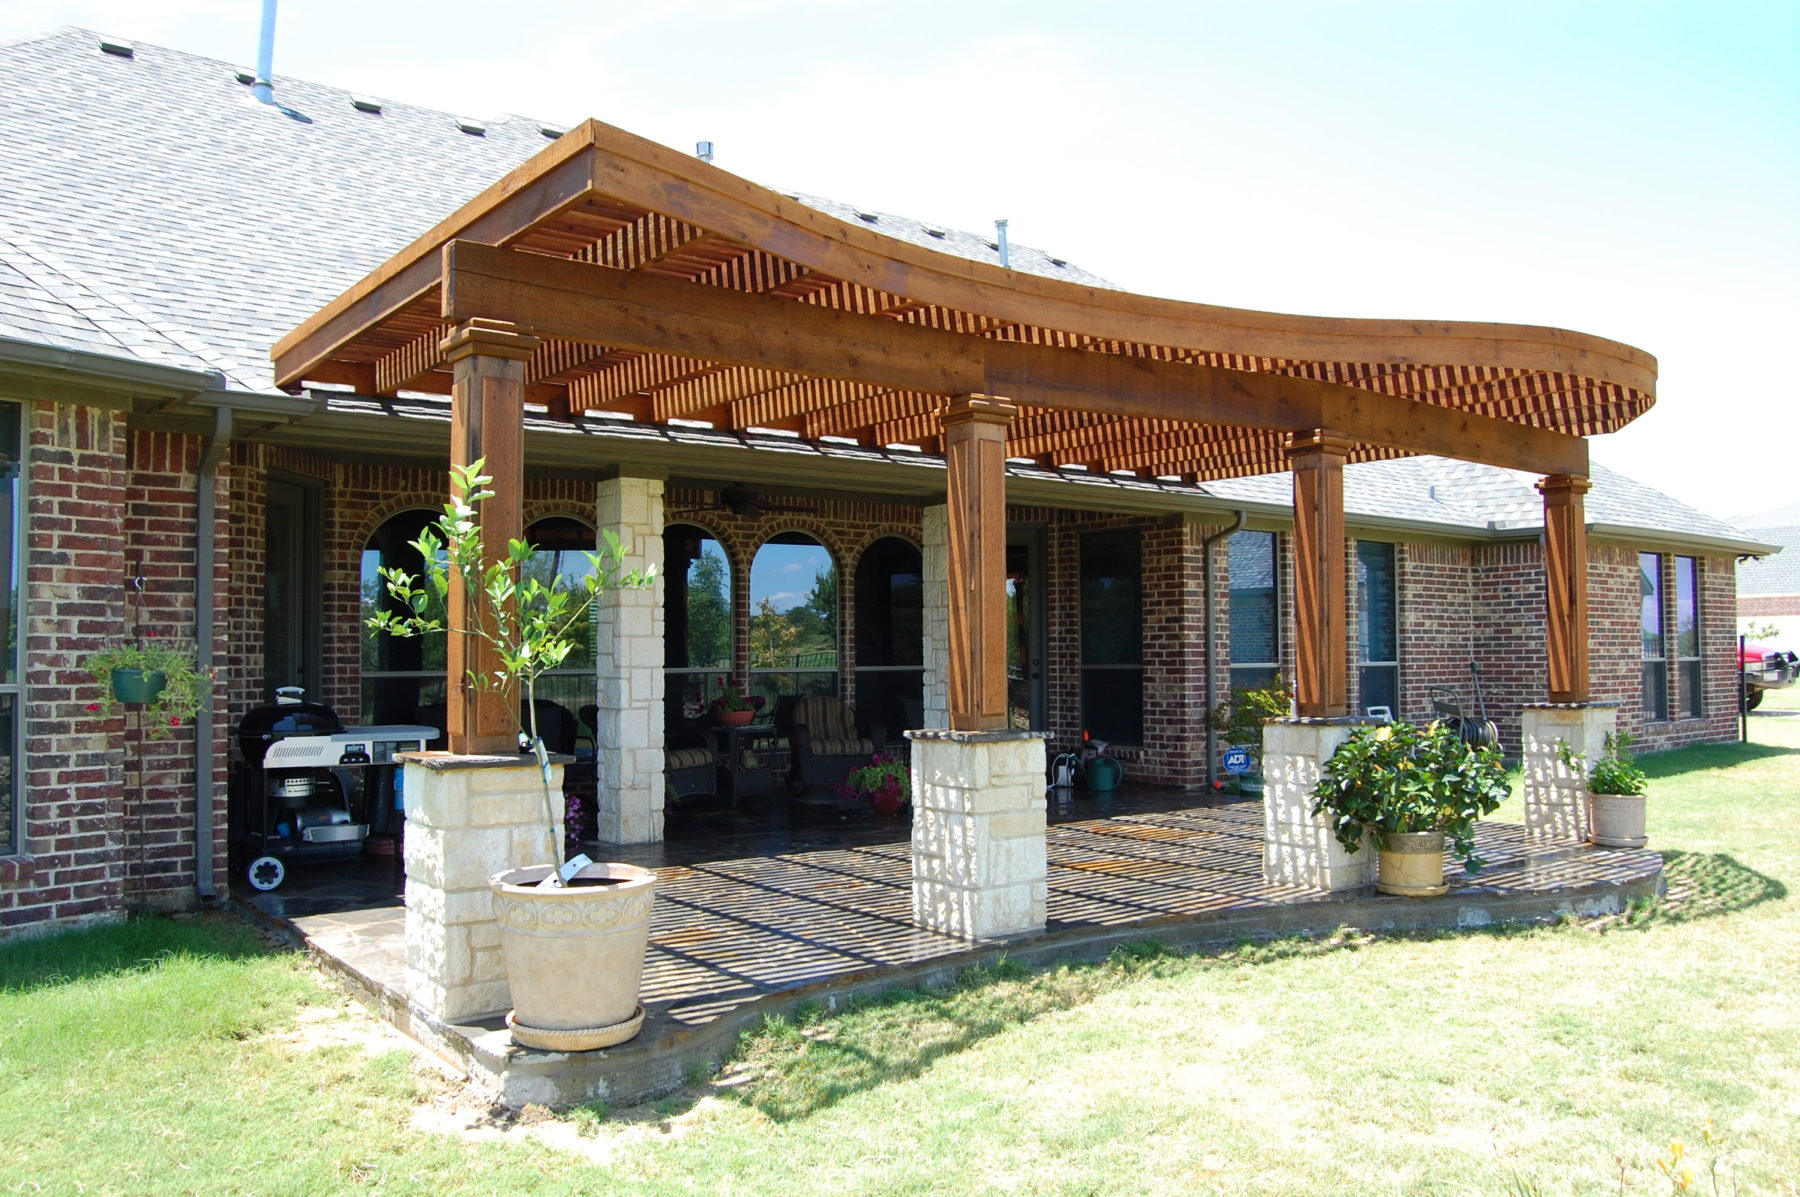 Radius edge shade structures custom patio designs for Home shade structures